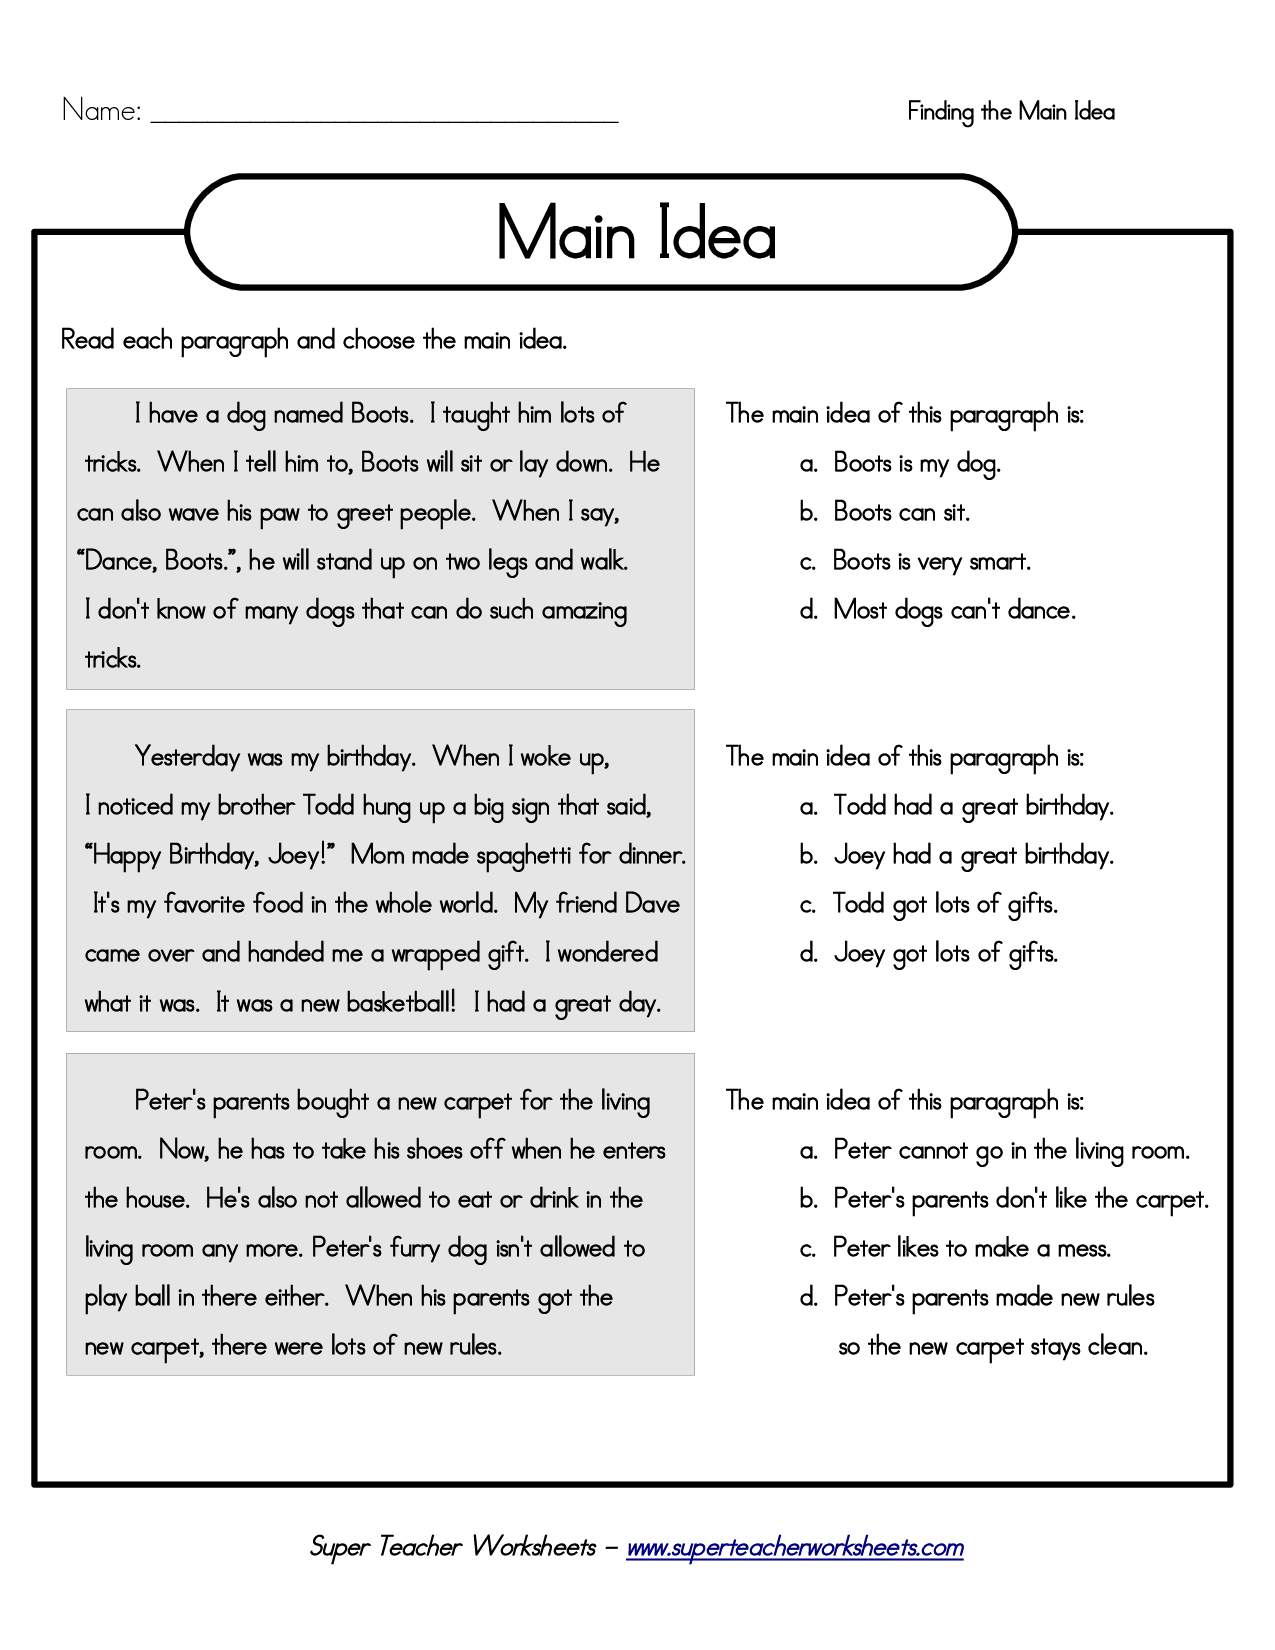 Main Idea Worksheet – Main Idea Worksheet